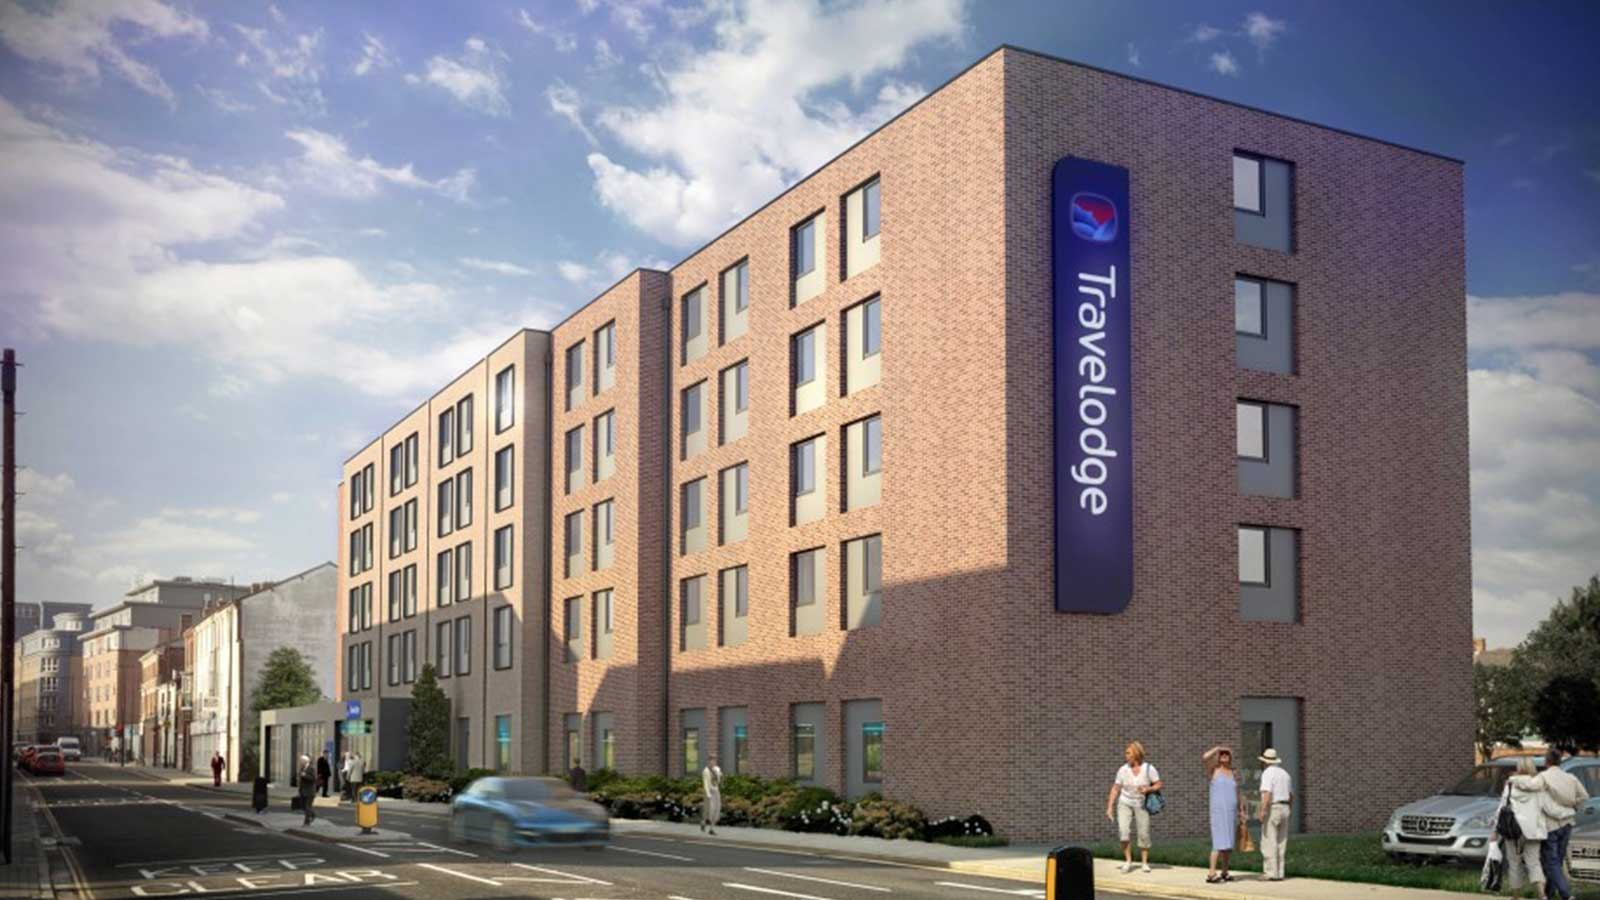 Travelodge-banner.jpg